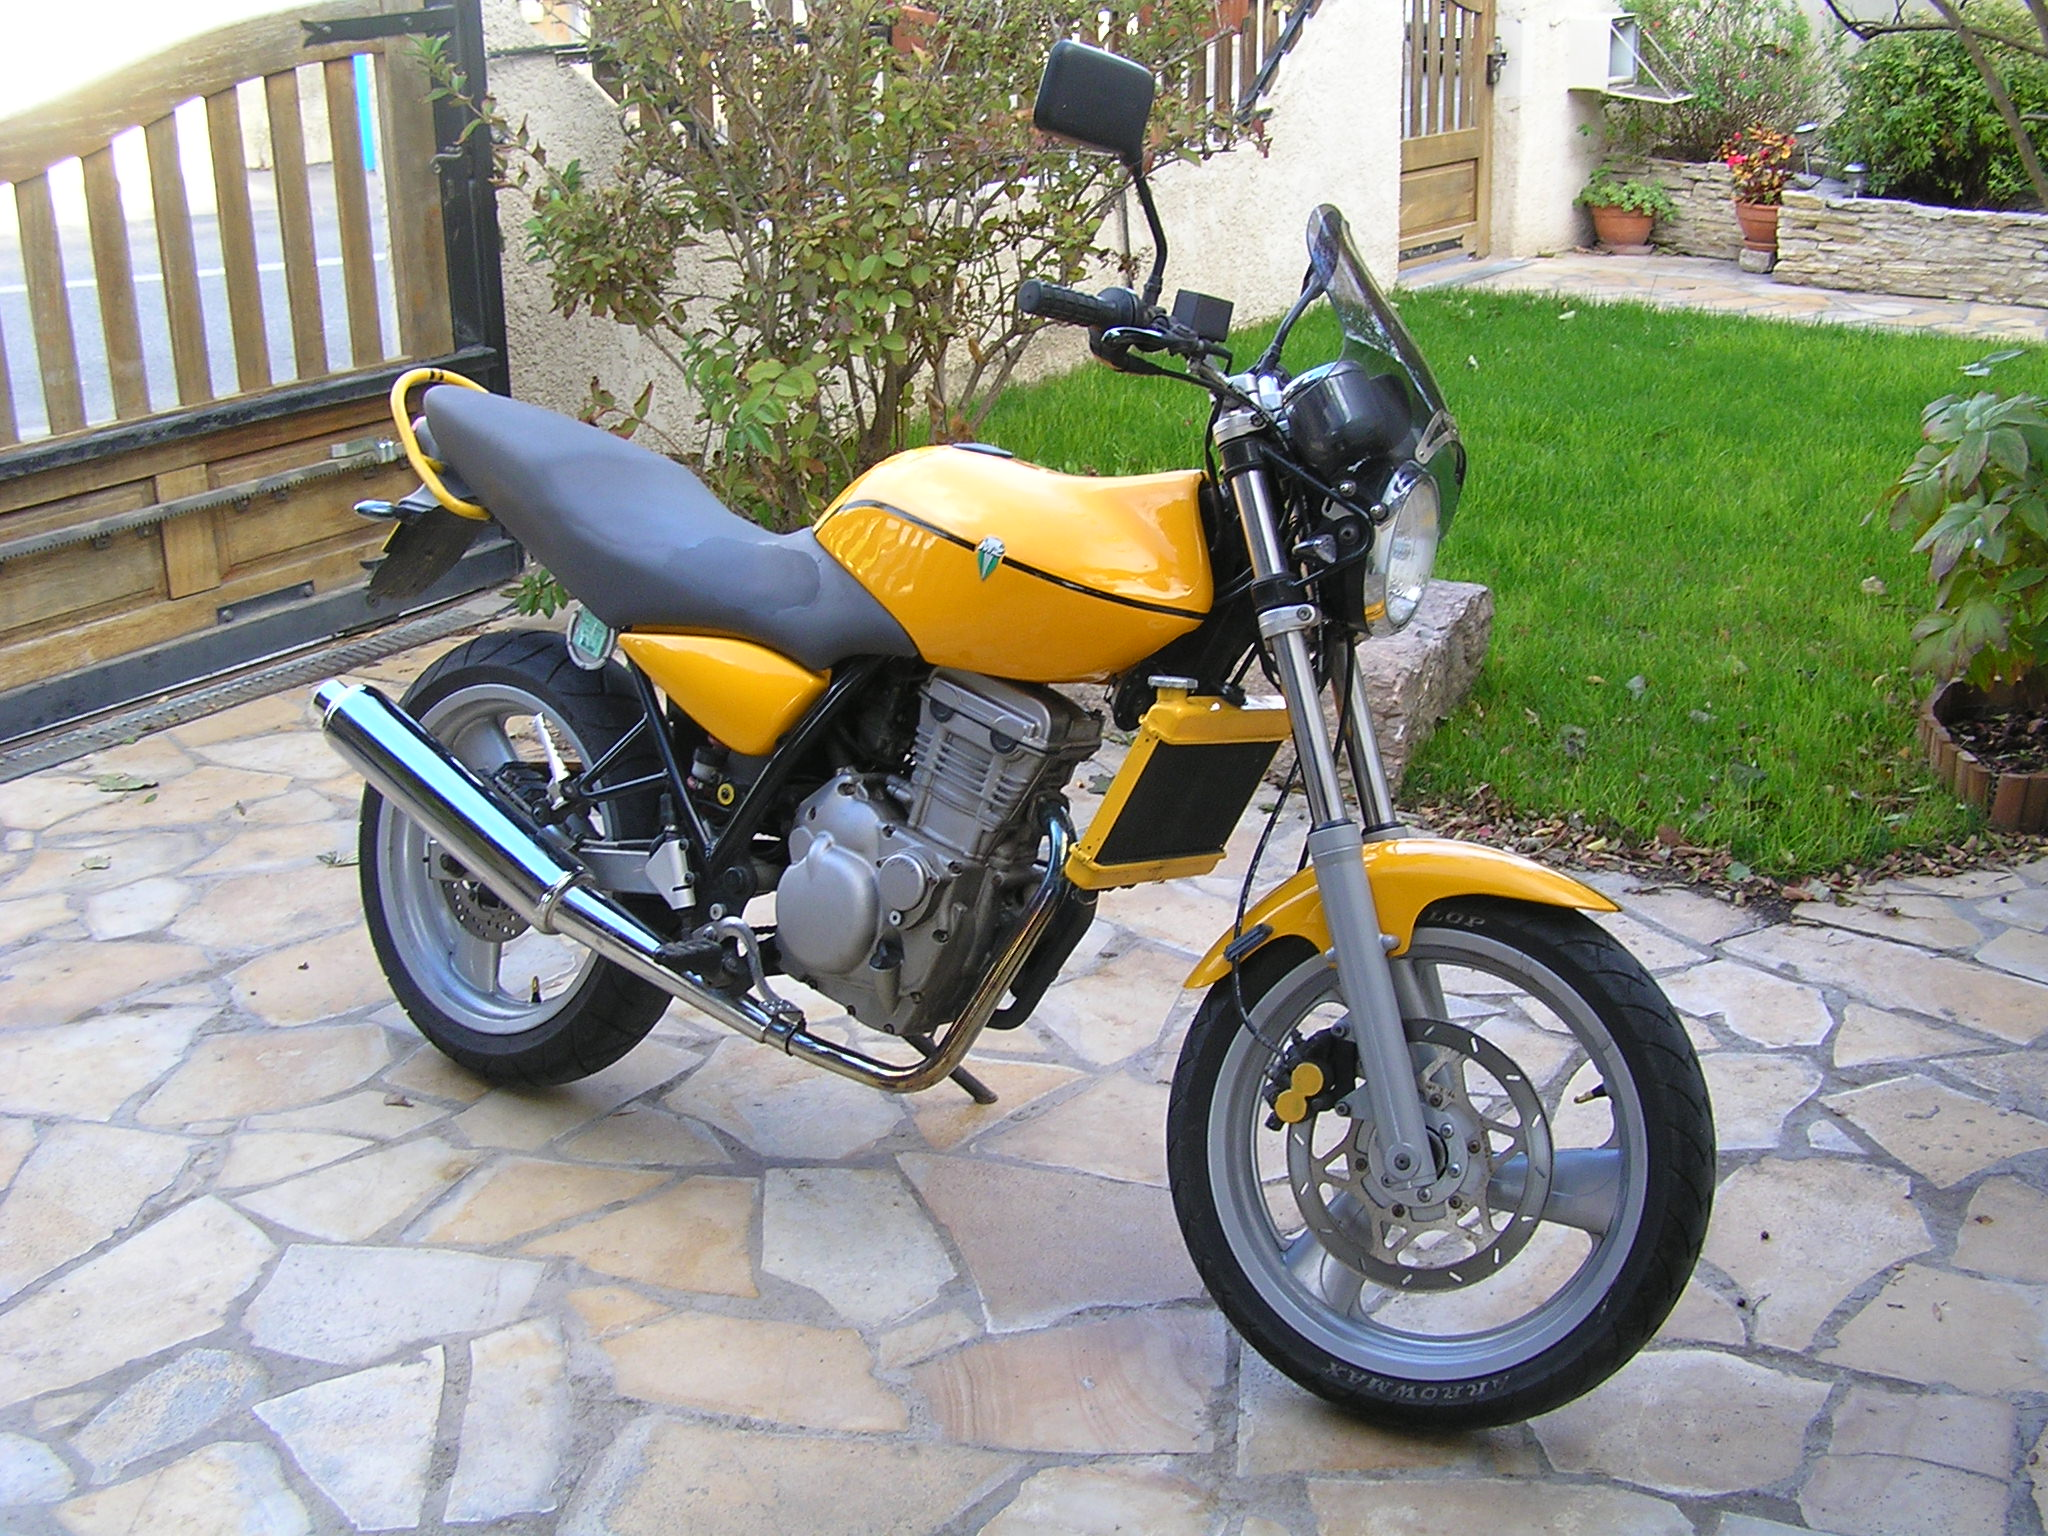 MZ motorcycles: pics, specs and list of models